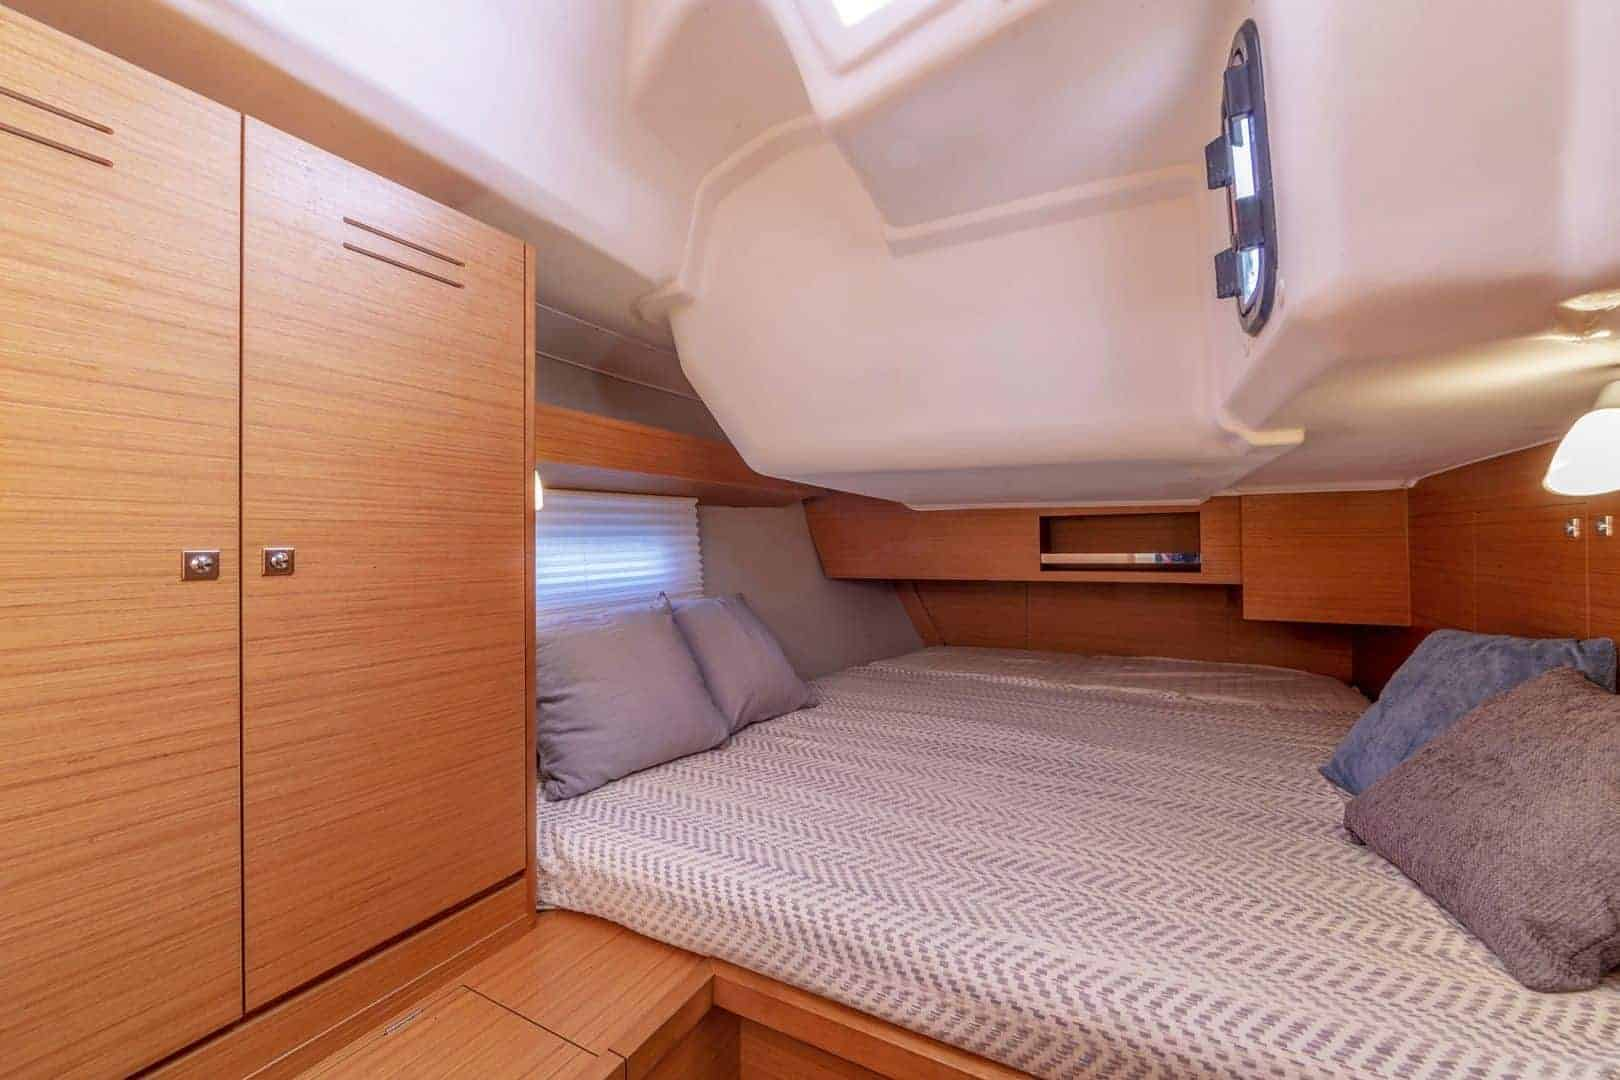 One of the Dufour GL 430's cozy cabins with a nice bed